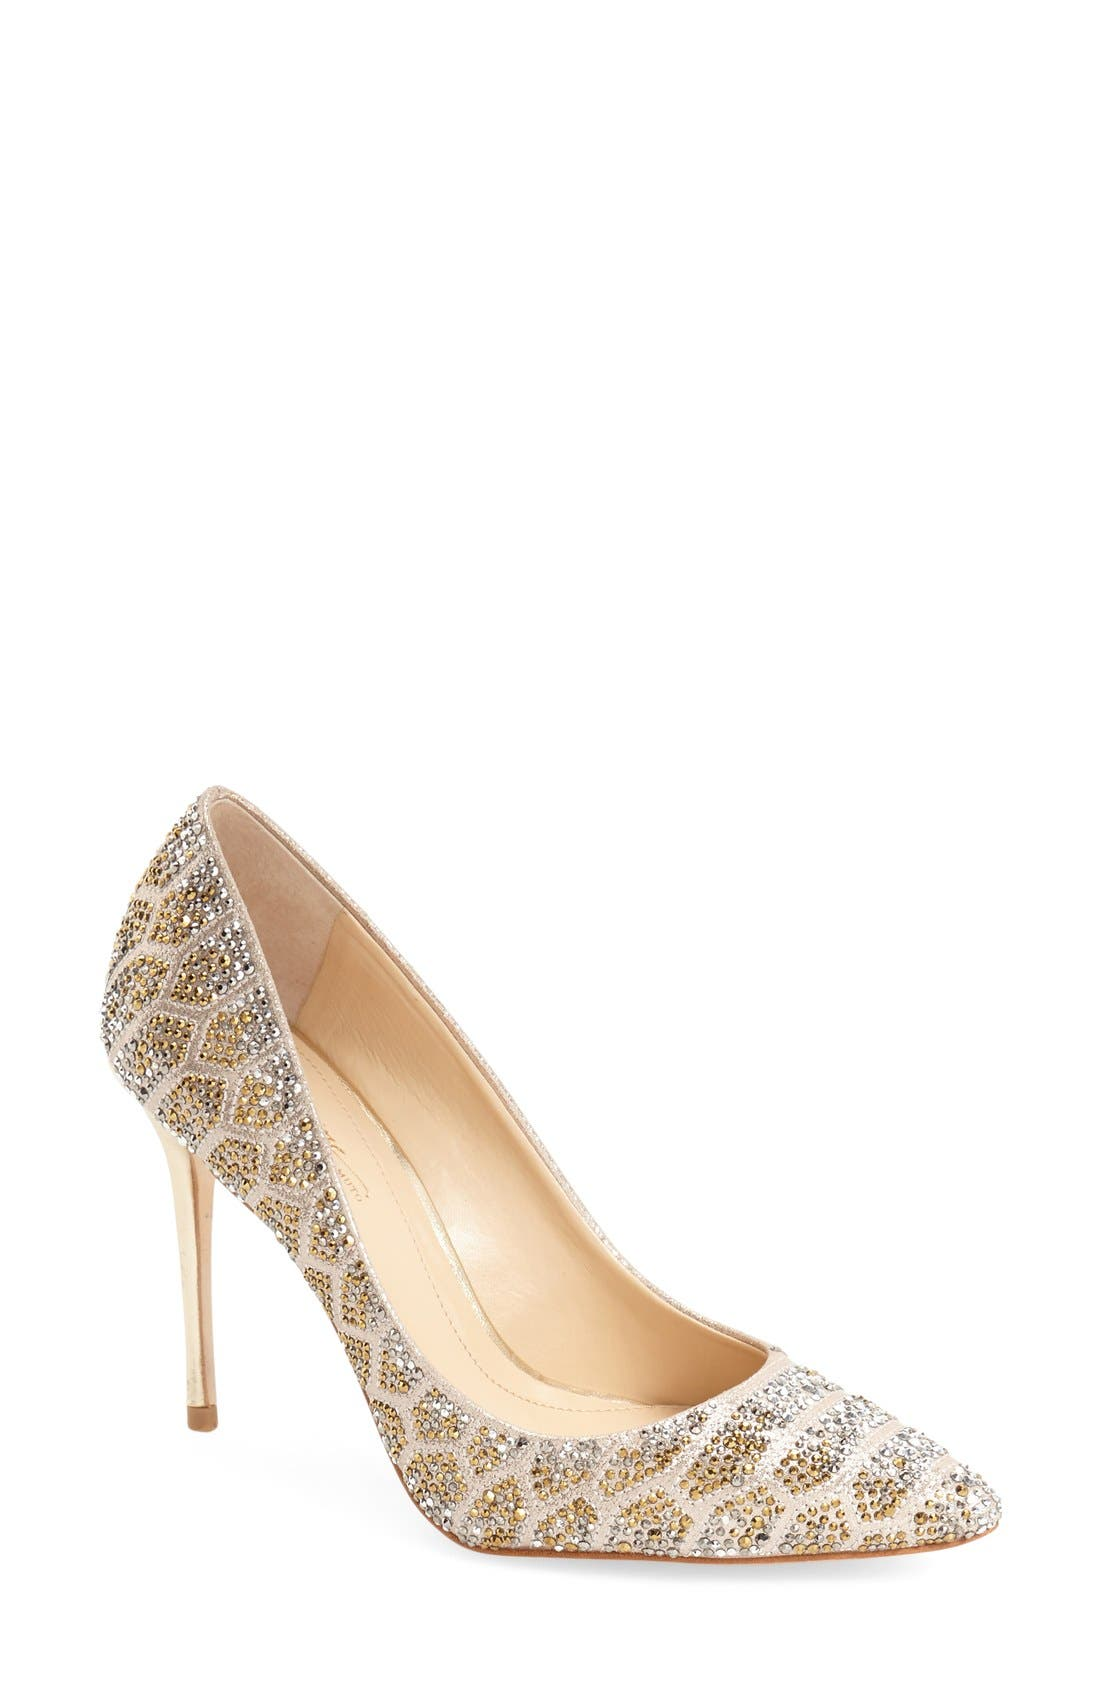 Alternate Image 1 Selected - Imagine Vince Camuto 'Olivier' Pointy Toe Pump (Women)